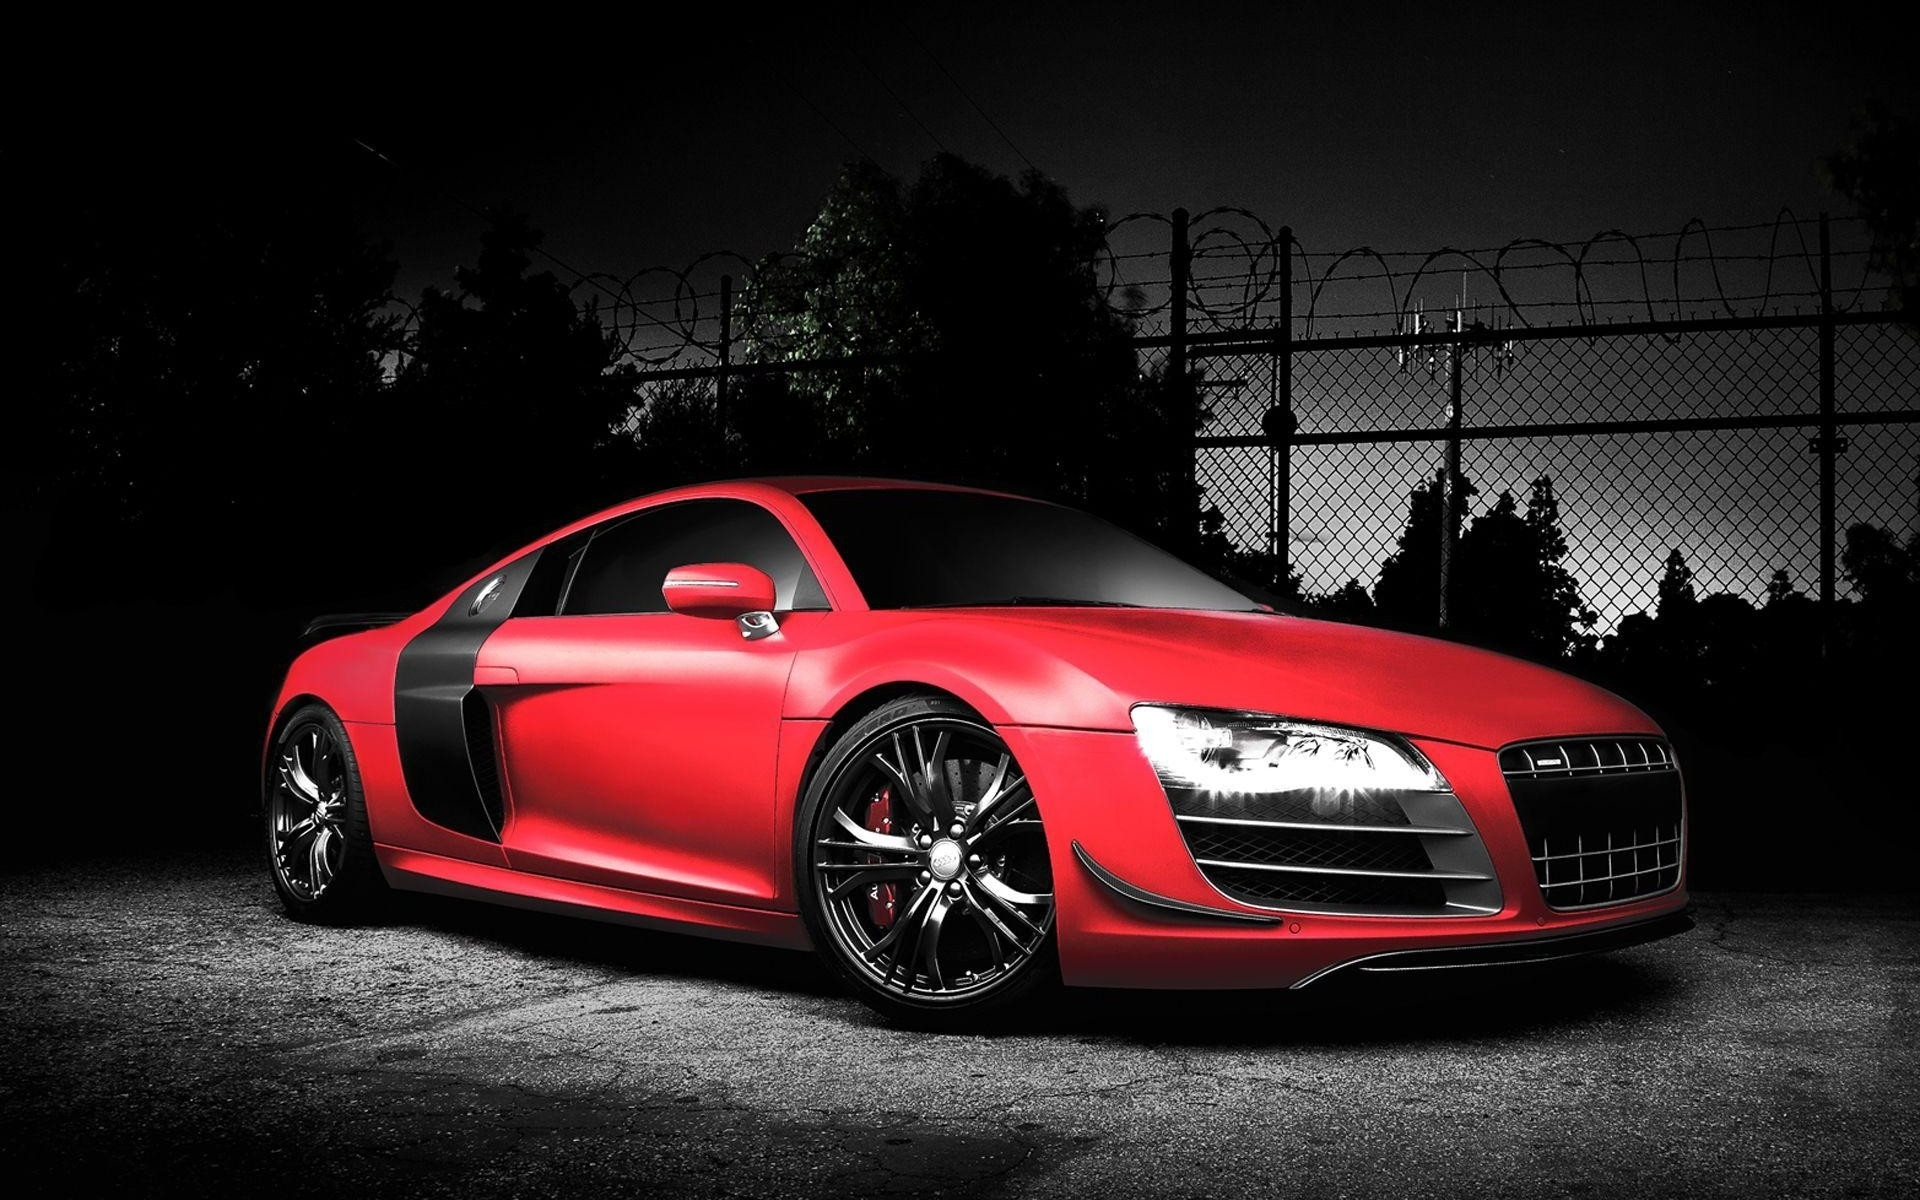 AUDI RS8 Automobile Wallpapers in HD | Iphone | Android| Desktop 7 Wallpaper